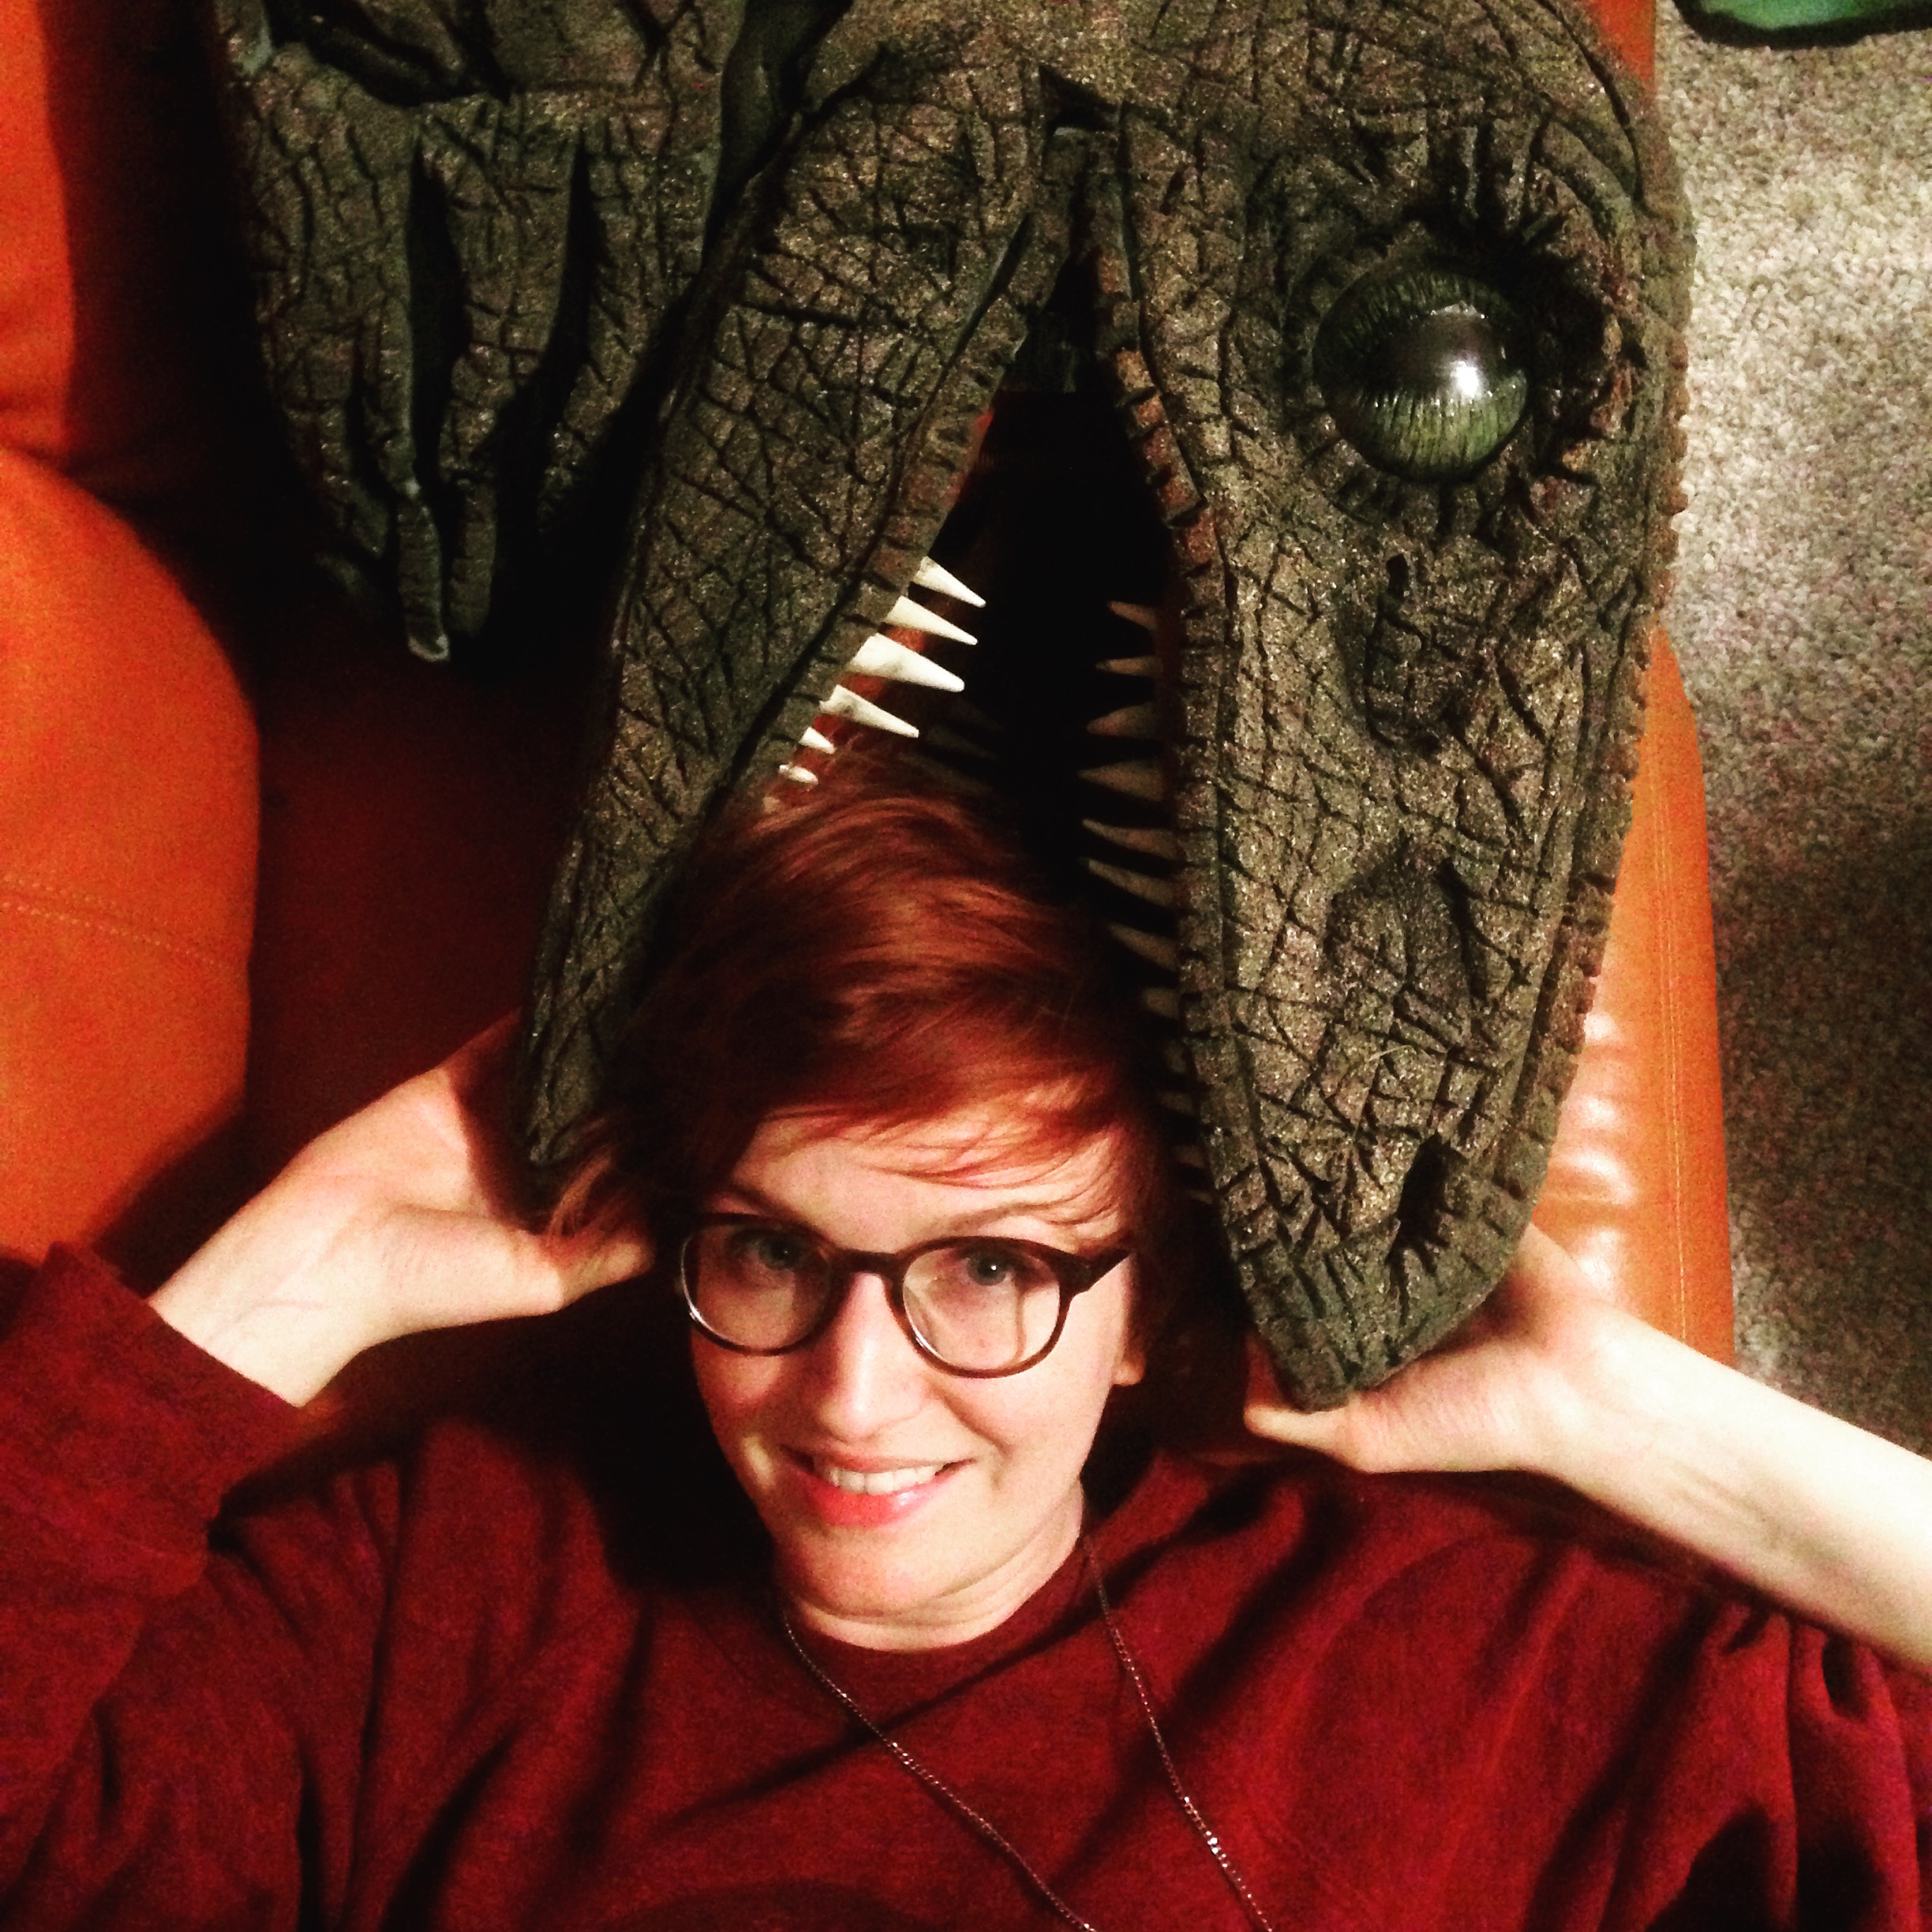 Kristin Wyly  {she/her/hers}  special effects, painting, sewing, woodworking, costume construction and design   Kristin Wyly is a creature creator and artist in Denton, TX. She mainly works on SFX makeups, monsters, costumes and recycled art. She can be reached at k.d.wyly@gmail.com.   kdwyly.wixsite.com/wyly  |  Instagram  |  Twitter